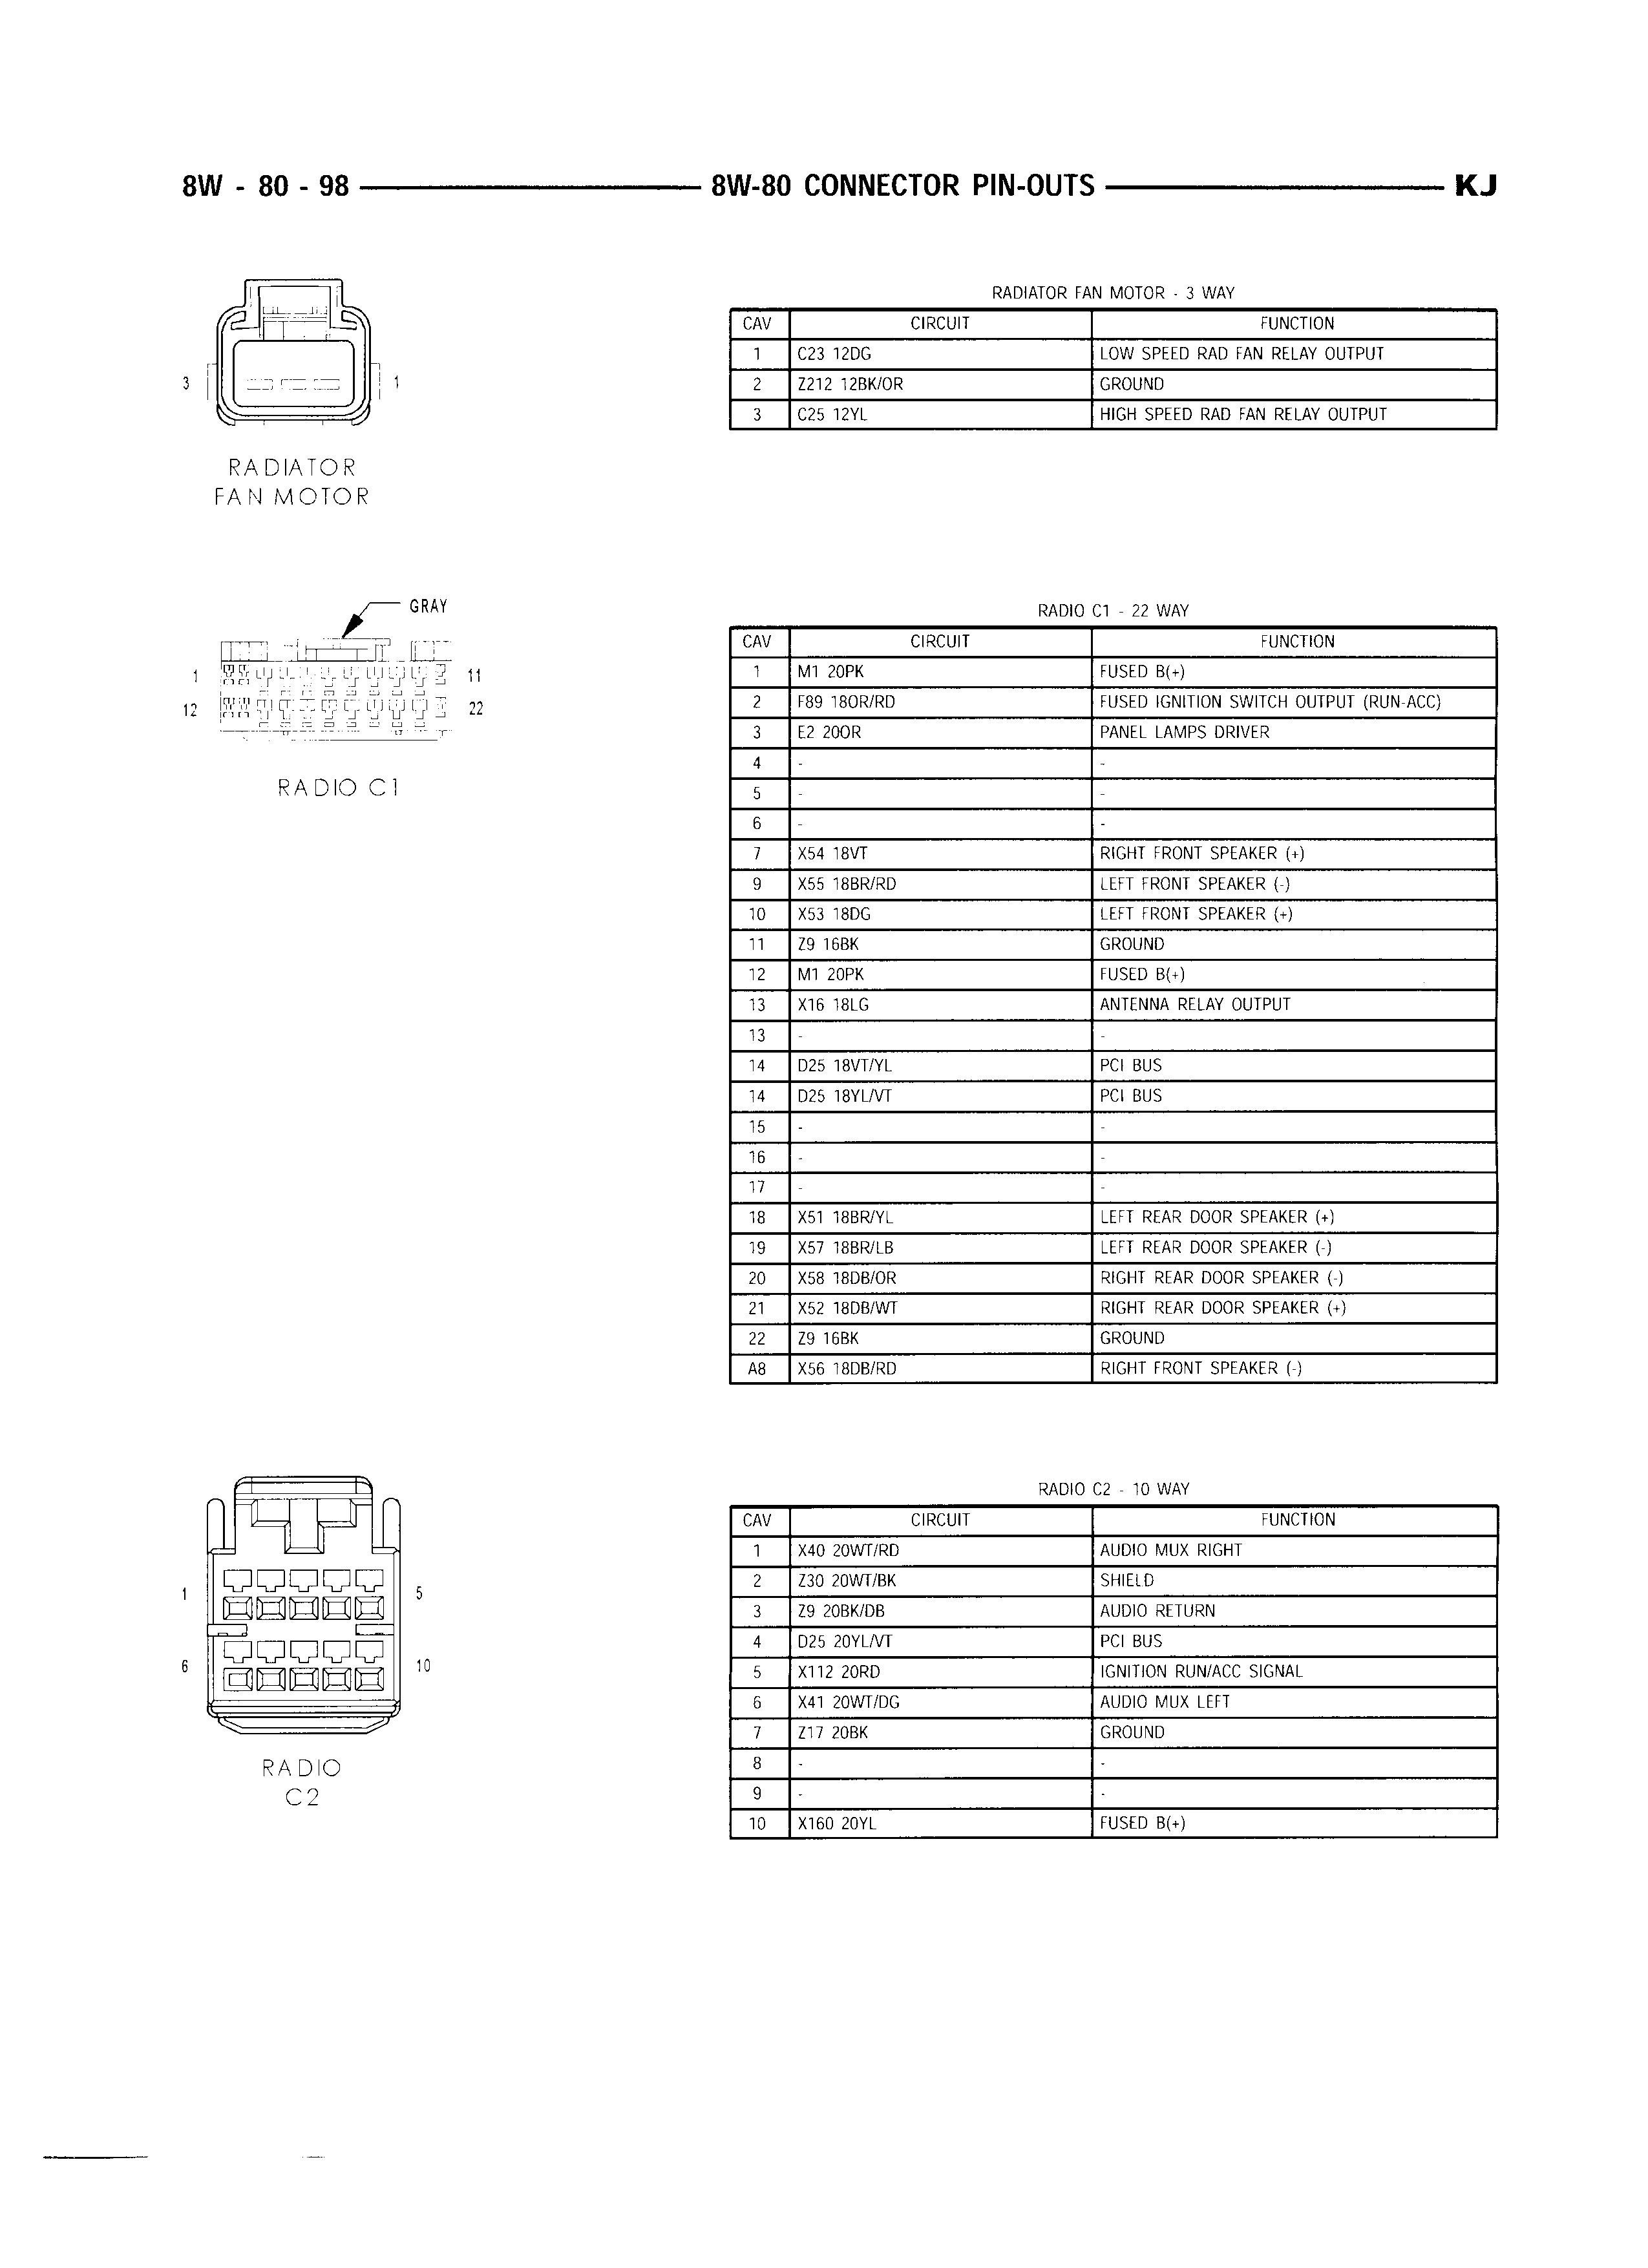 Cooling Fan Wiring Diagram 2002 Jeep Liberty 2002 Jeep Liberty Wiring Wiring Diagram Centre Centre Of Cooling Fan Wiring Diagram 2002 Jeep Liberty